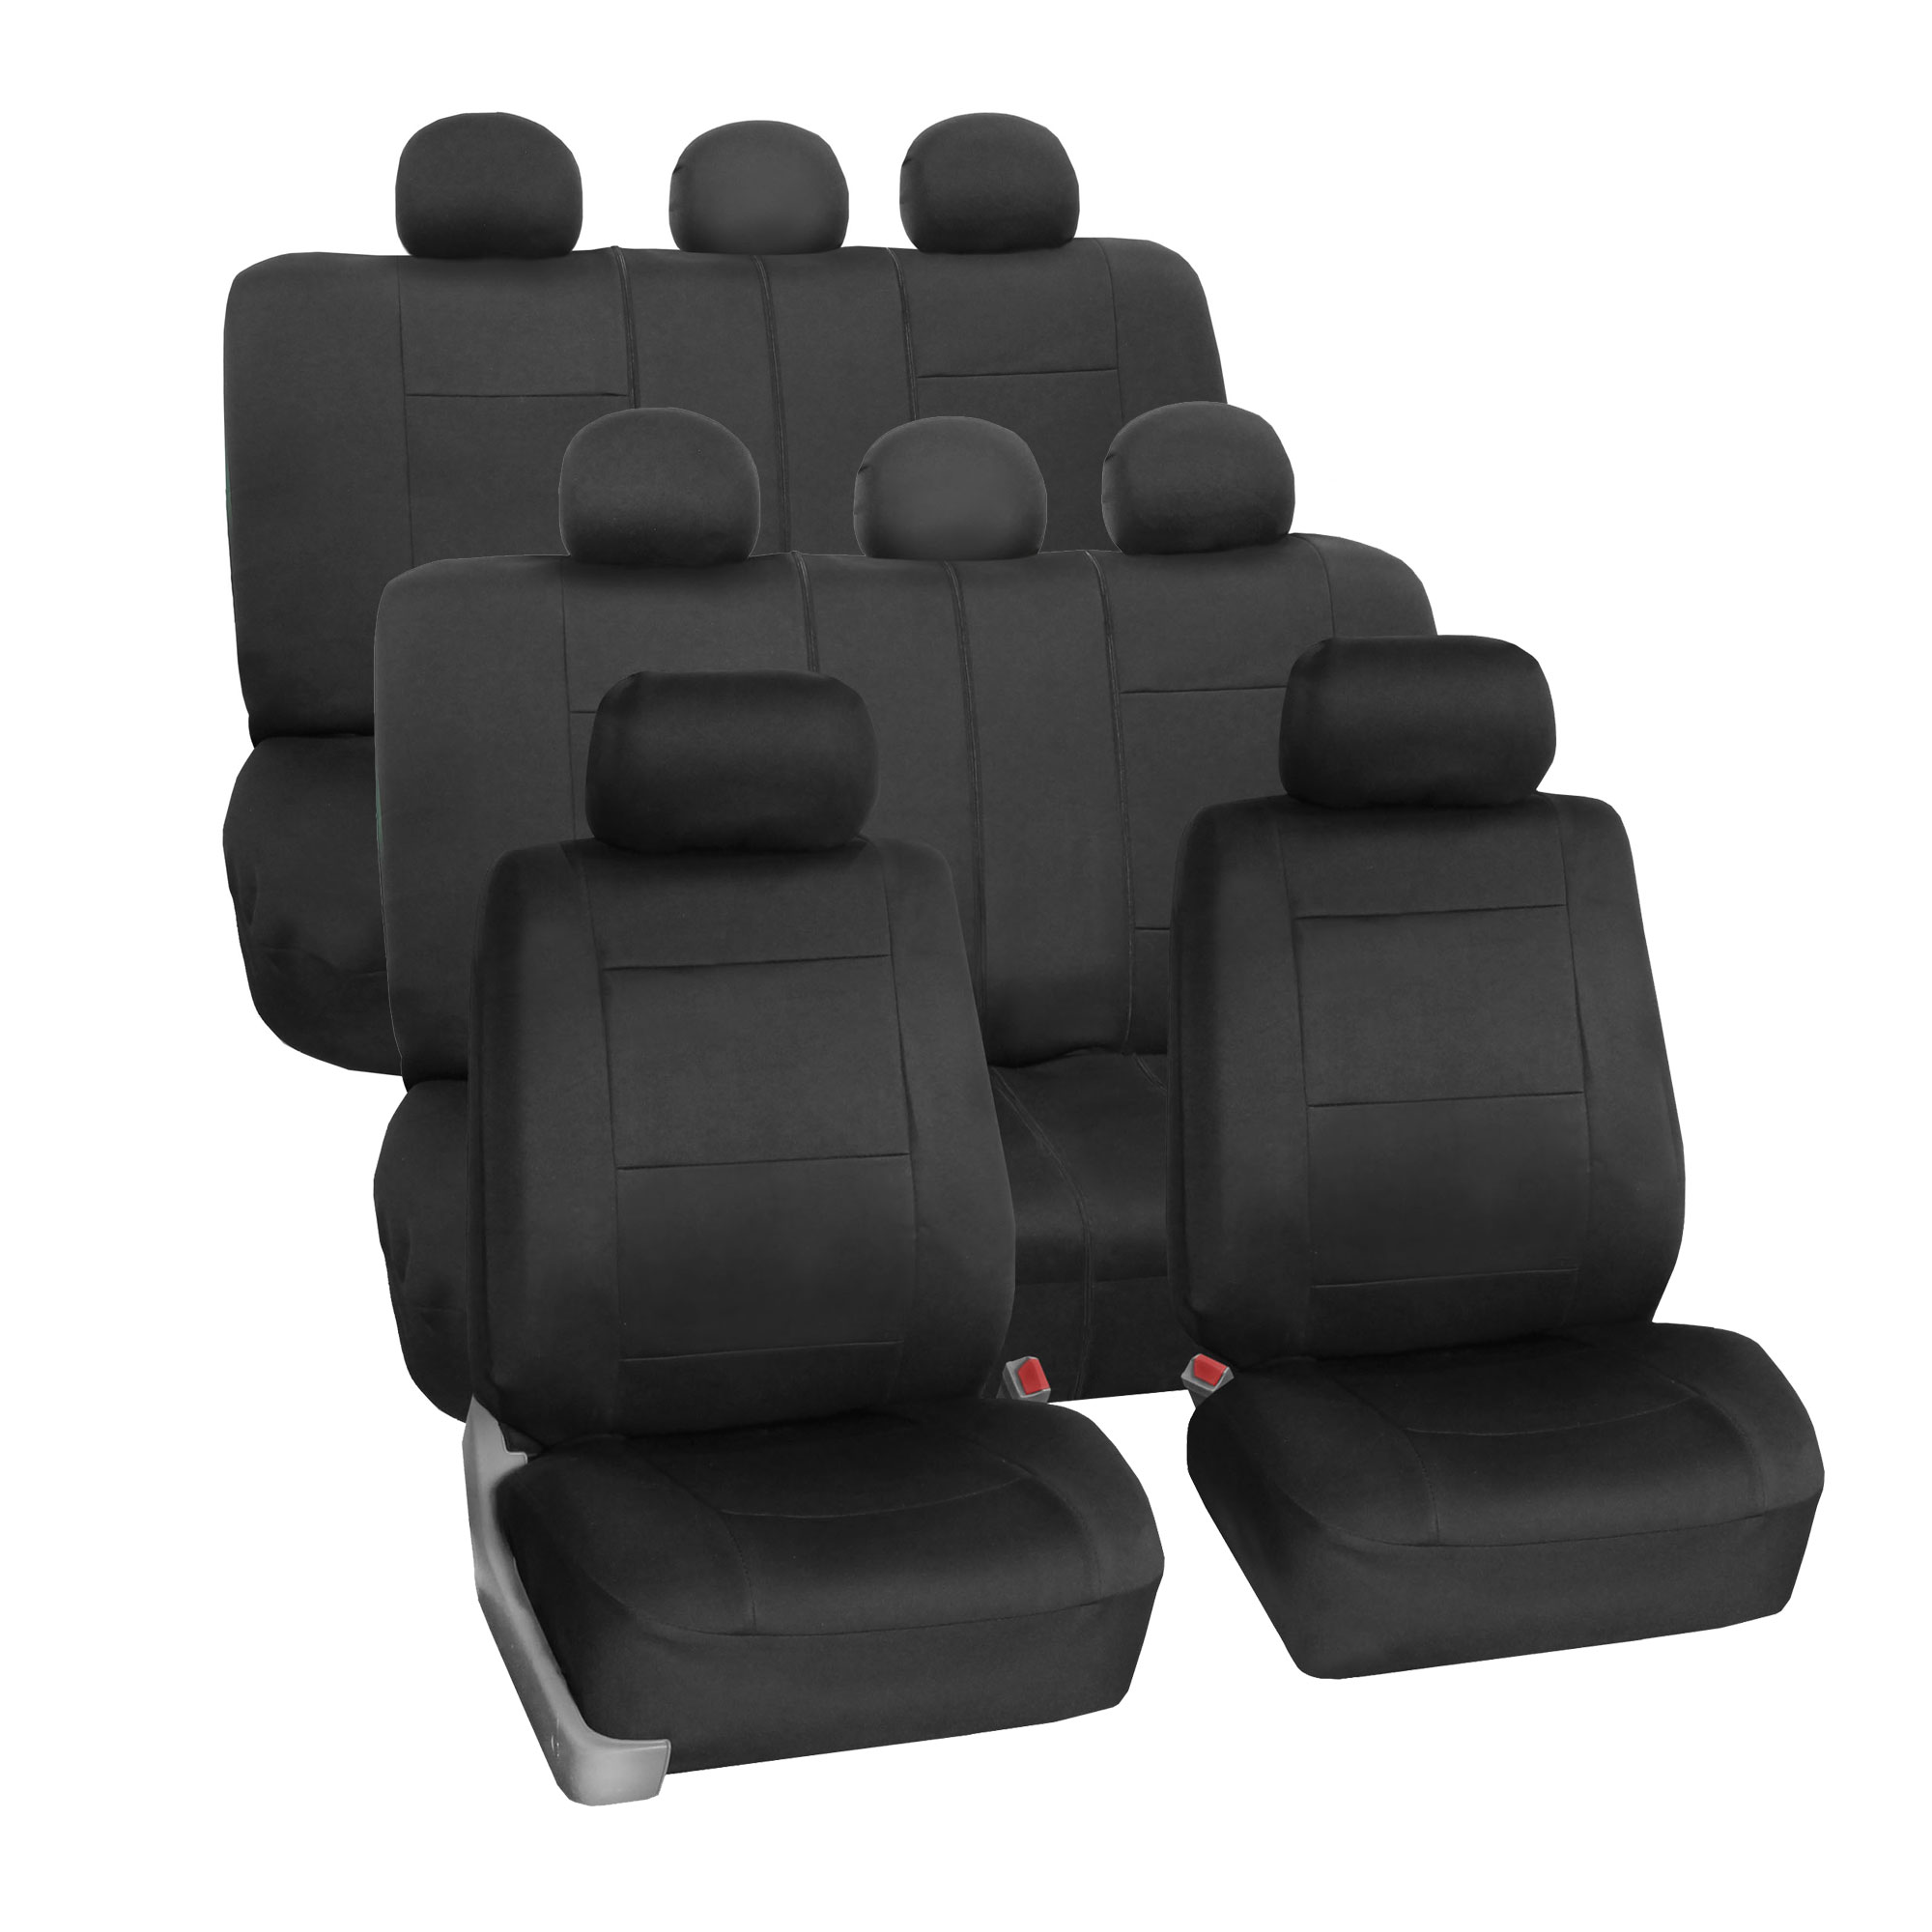 Neoprene 3 Row Car Seat Covers For SUV VAN TRUCK, Airbag Compatible Split Bench 8 Seaters, Black